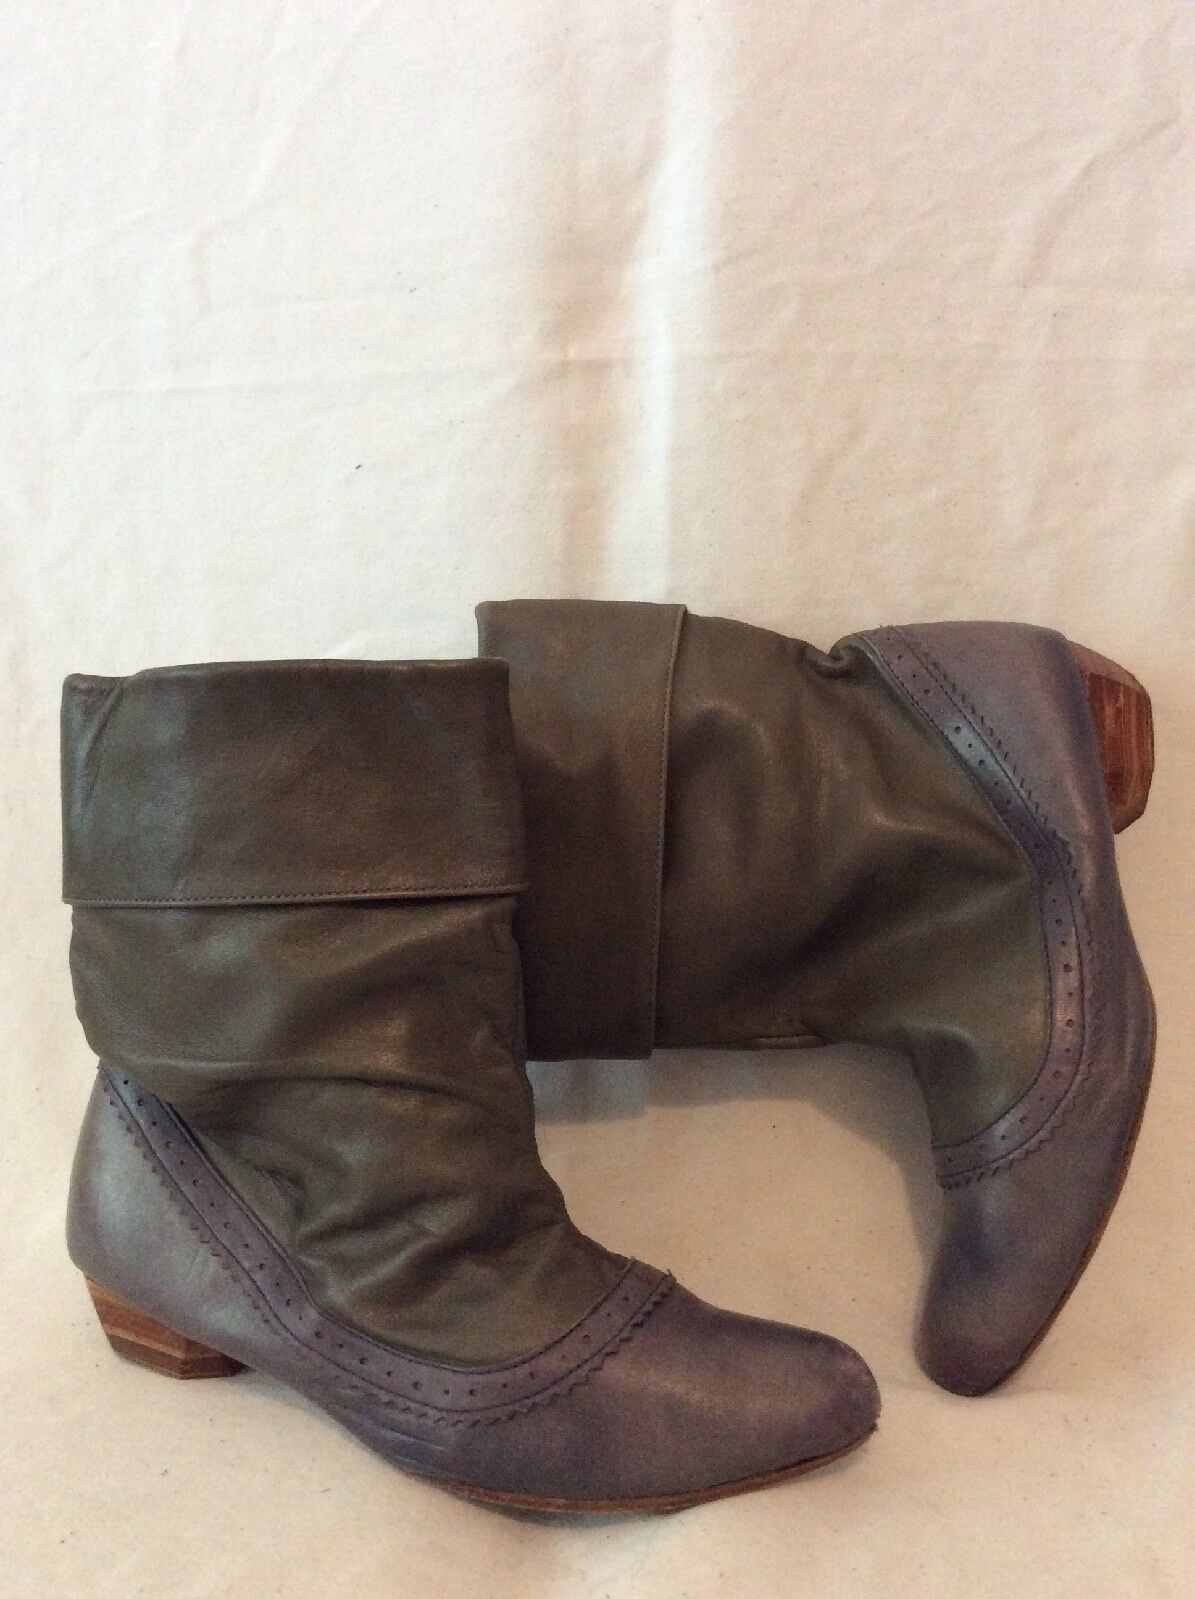 Urban Code Brown&Purple Mid Calf Leather Boots Size 38